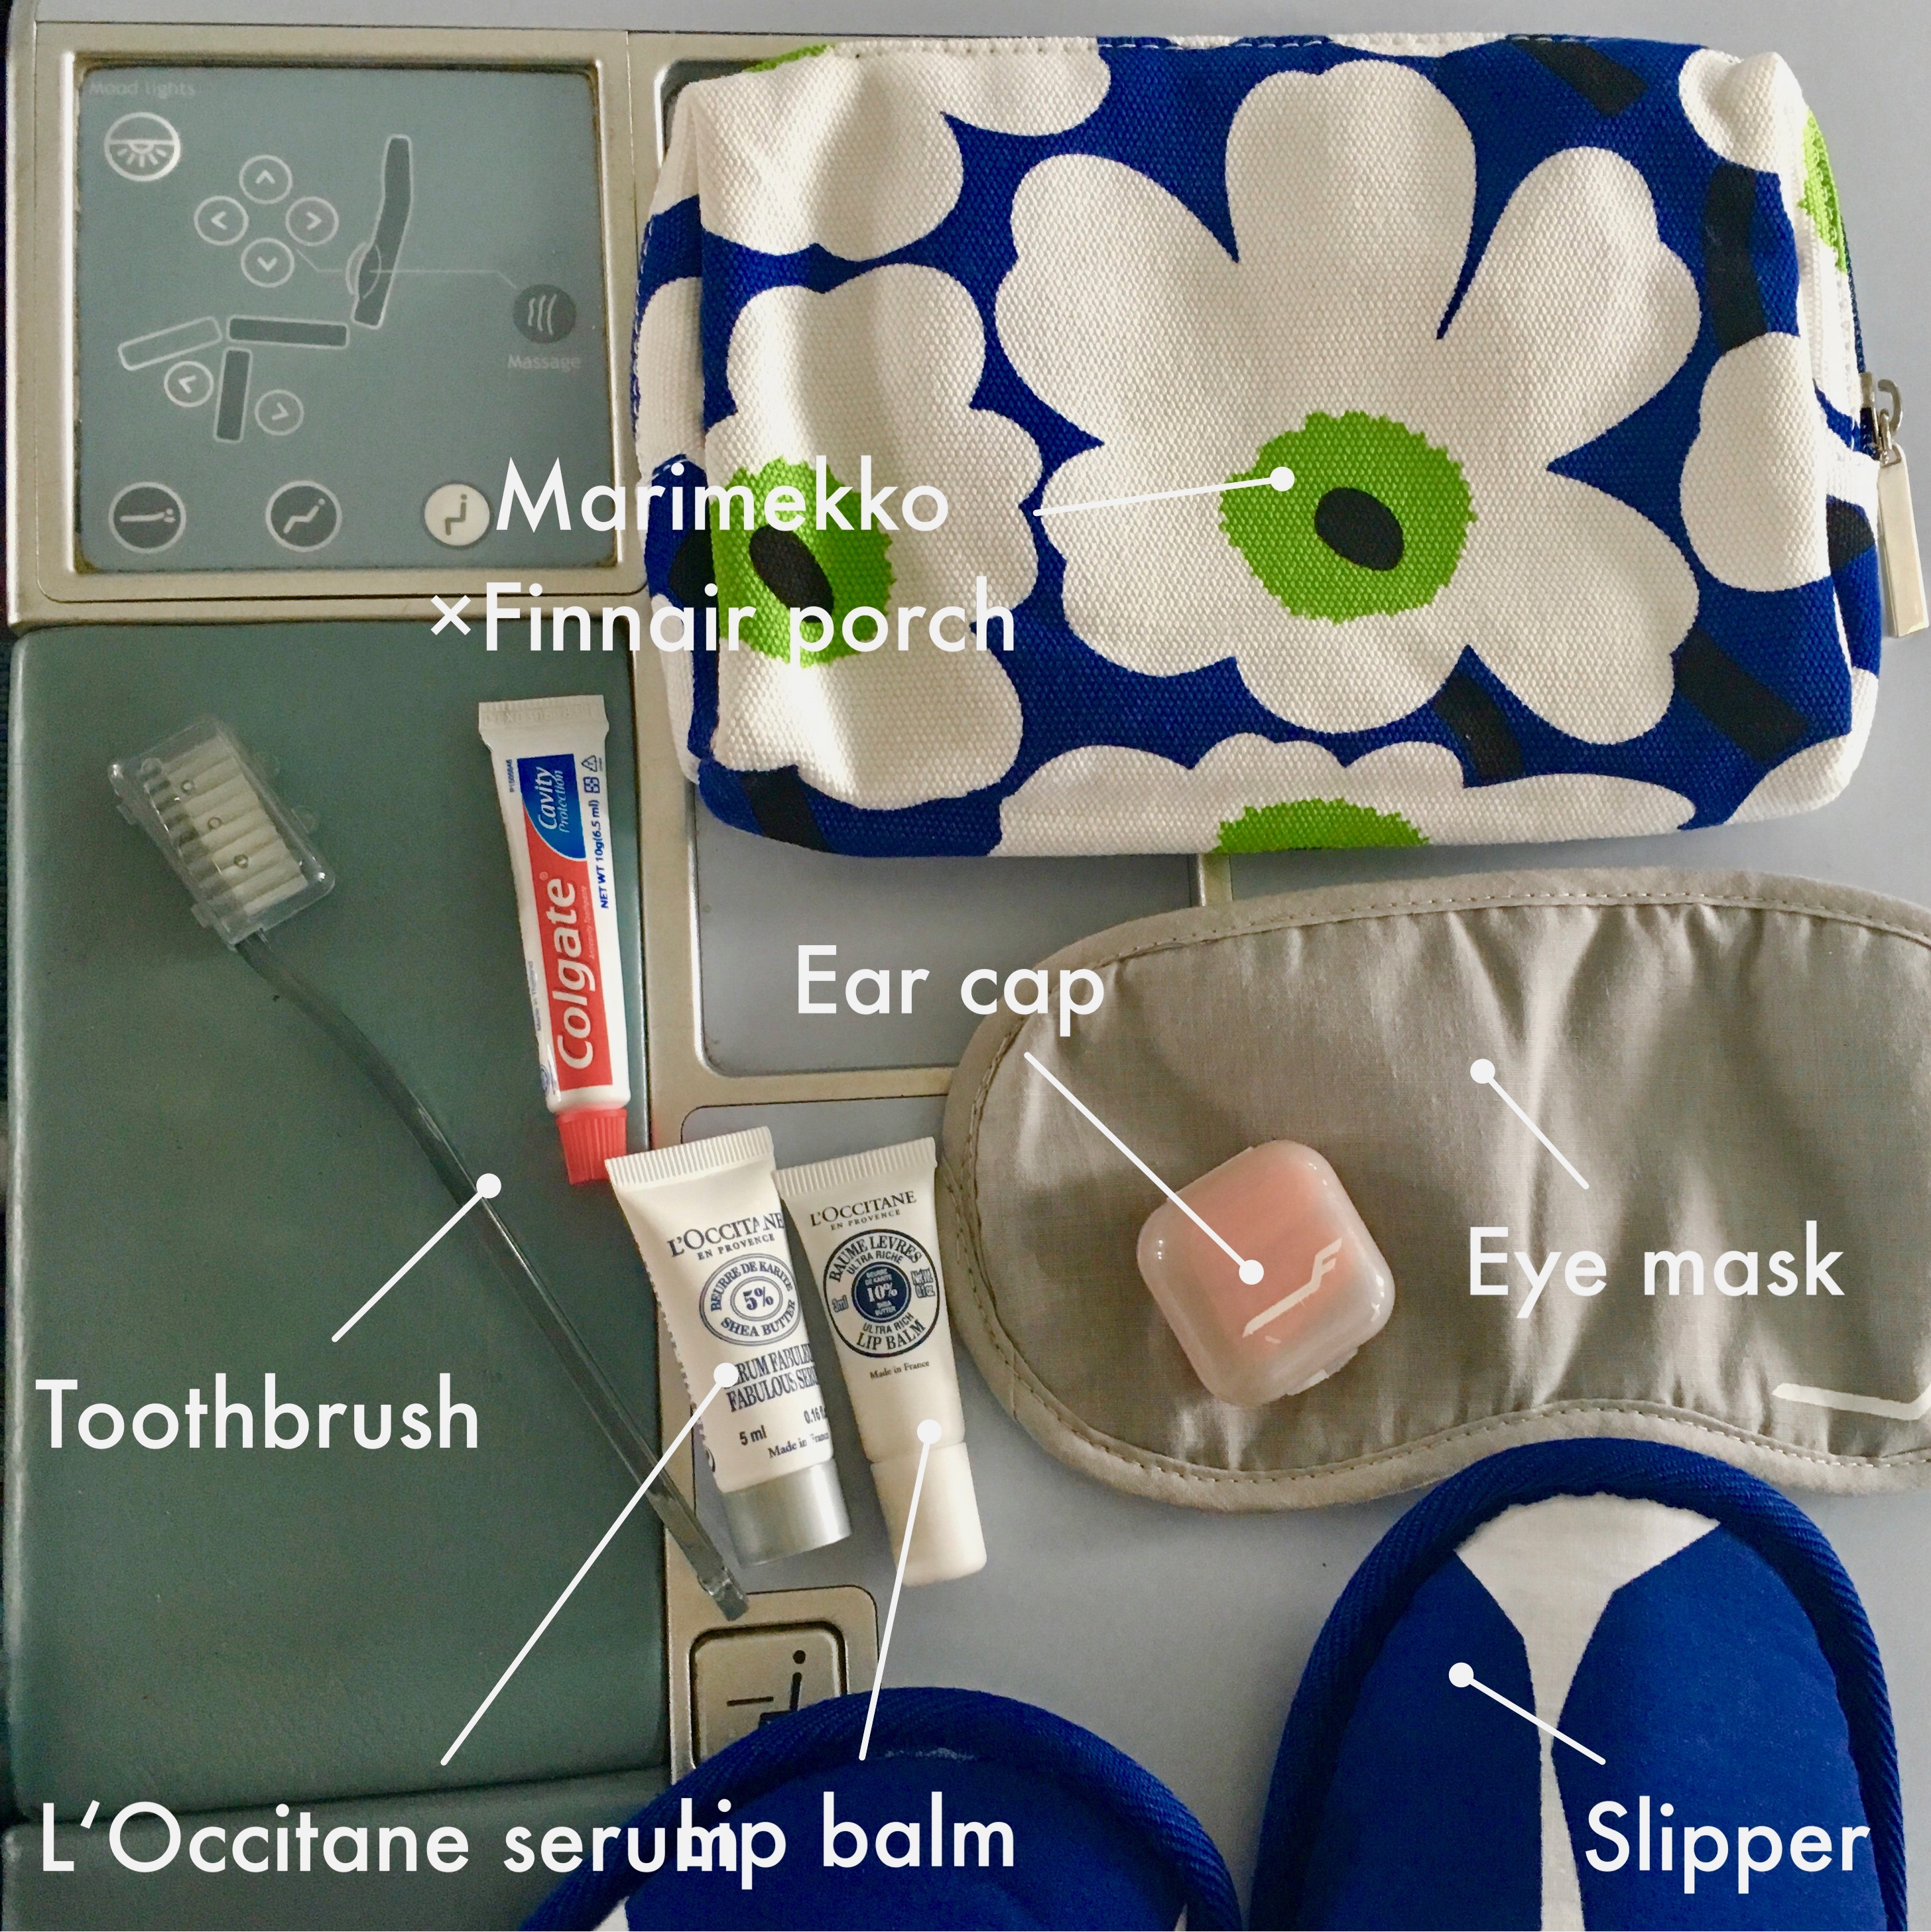 Marimekko ×Finnair porch | Toothbrush | L'Occitane serum | Lip balm | Ear cap | Eye mask | Slipper |